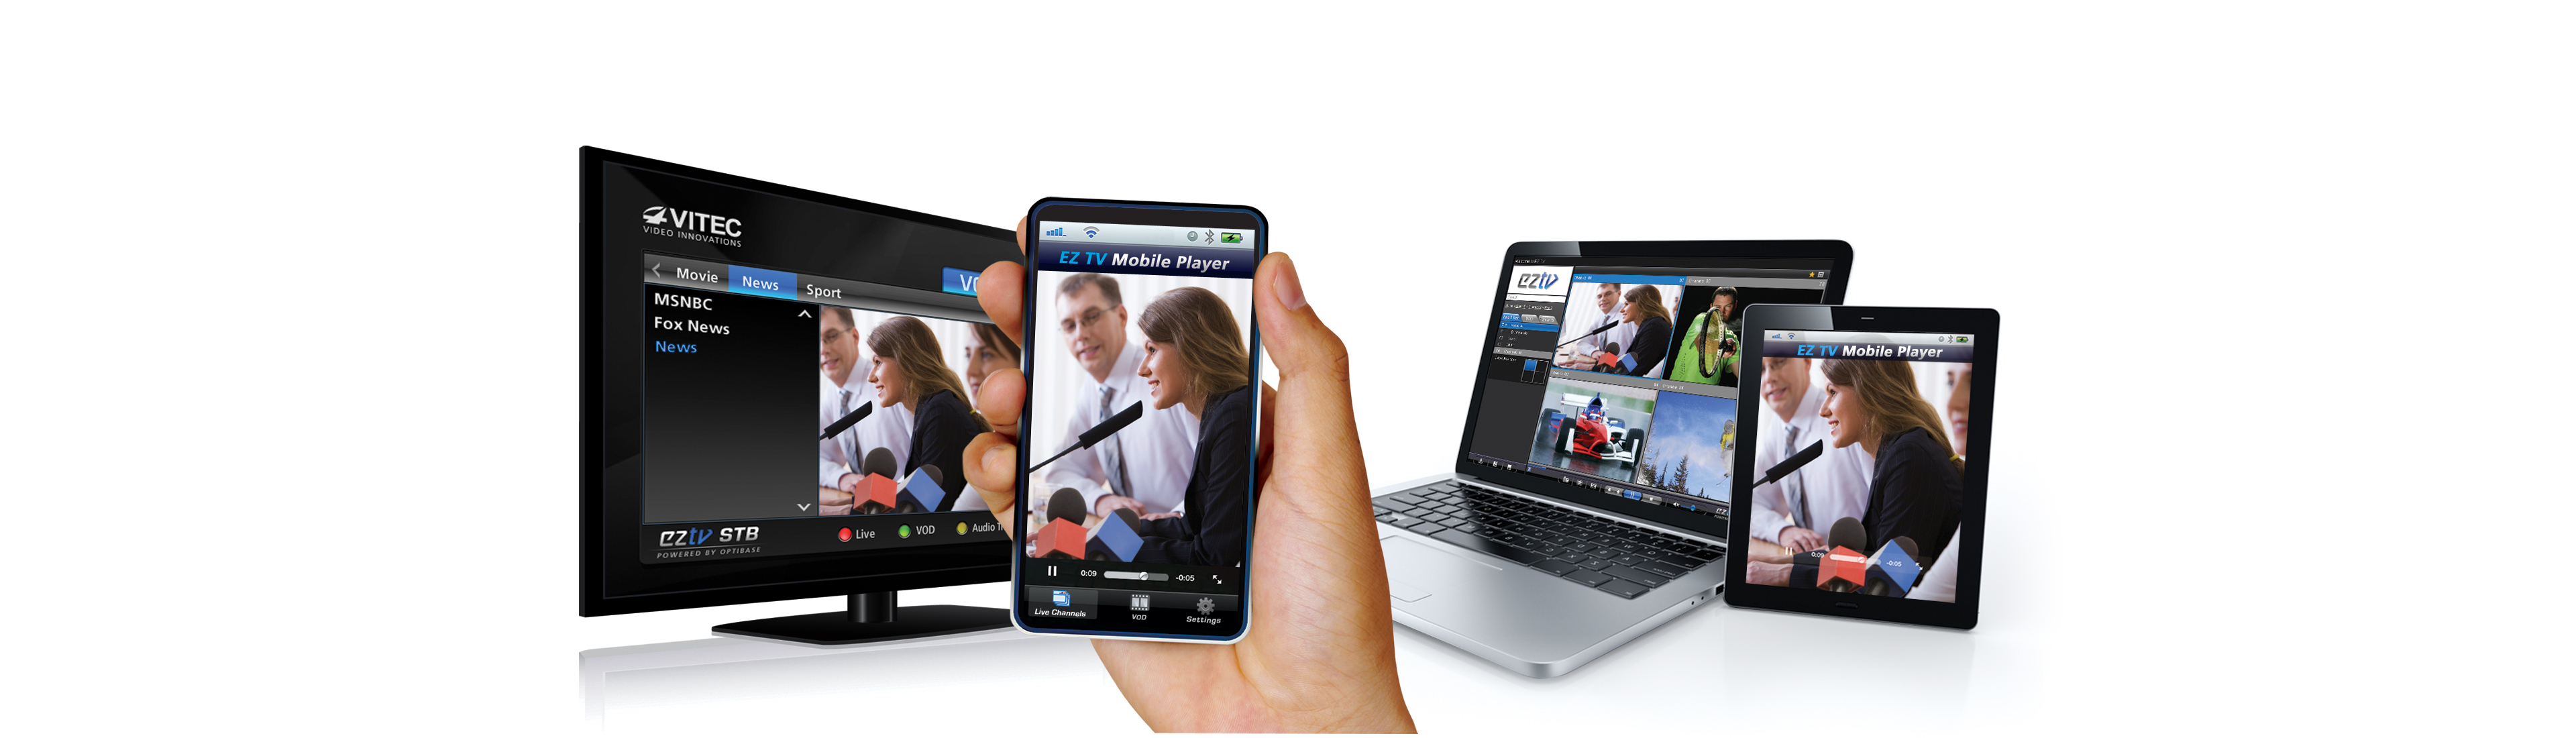 VITEC - Video Streaming to Mobile Devices - Extend the Reach of IPTV Content to Mobile Devices